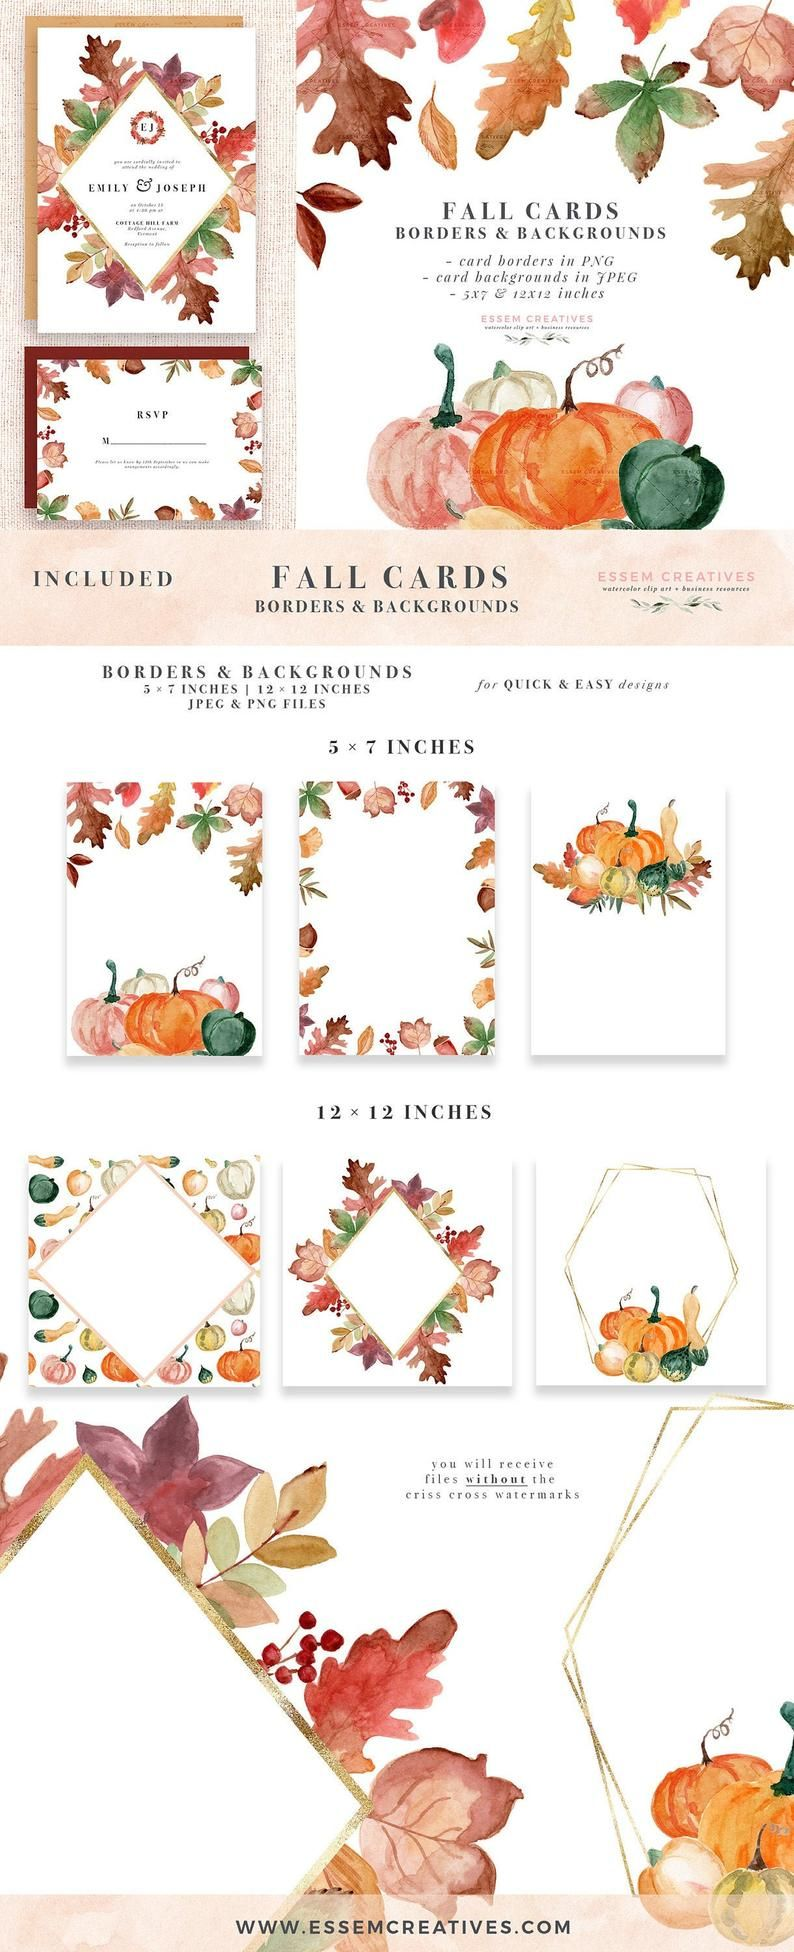 Rustic Fall Watercolor Digital Papers Autumn Leaf Pumpkins Etsy In 2020 Fall Watercolor Leaf Cards Fall Wedding Invitations